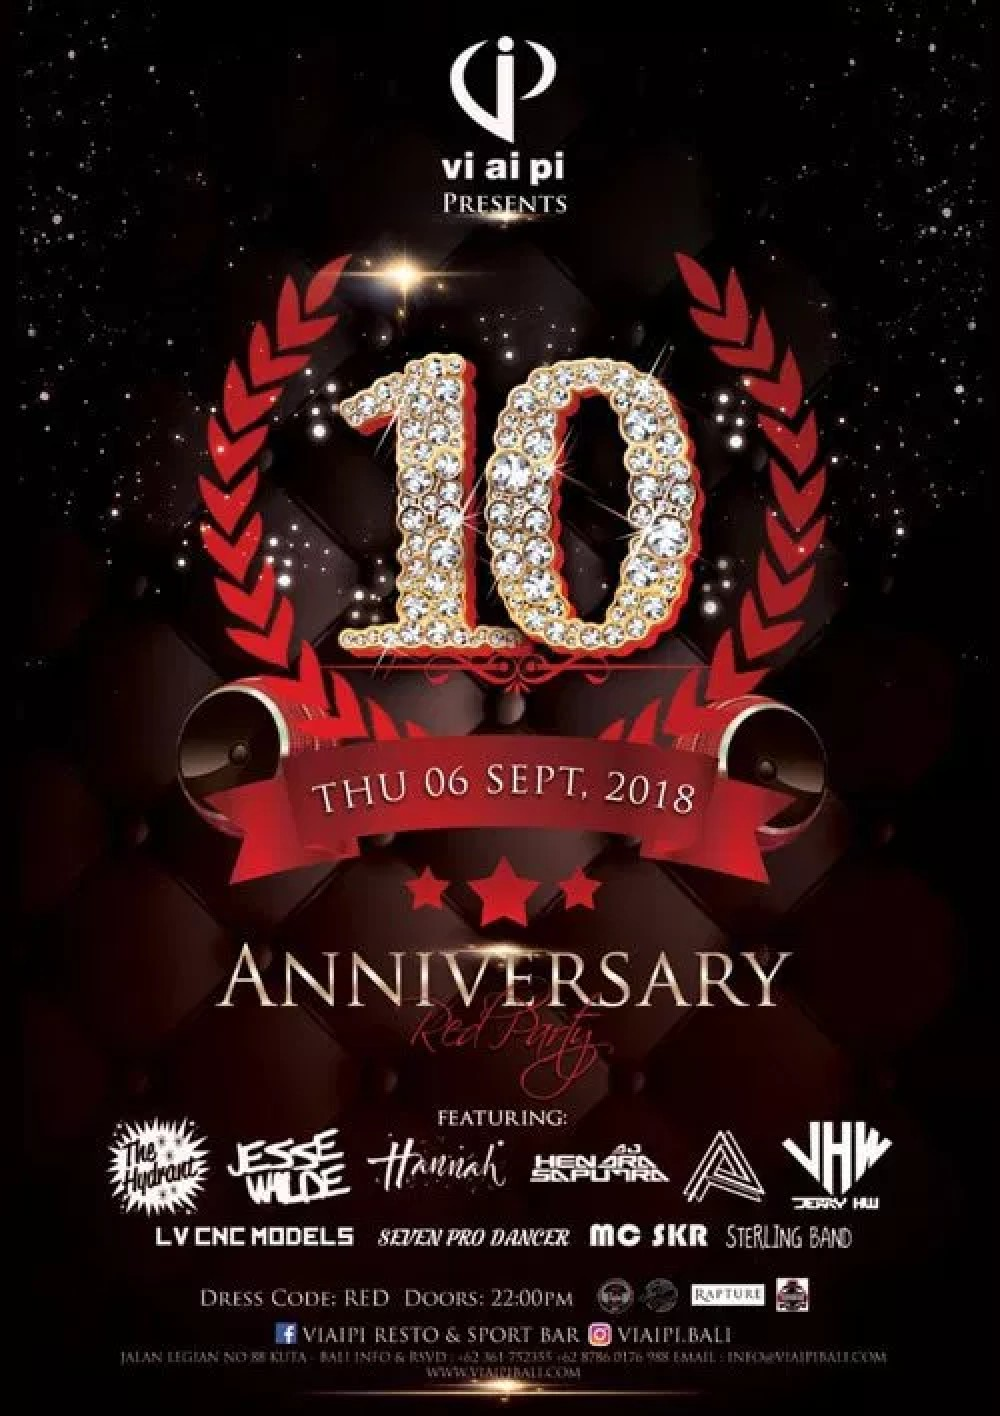 Bali Nightlife Entertainment Events 1st Week Of Sept 2018 Tiket Soundren This Thursday Mega Club Vi Ai Pi Will Celebrate A Decade Party Madness With Their Annual Anniversary Years Theme Is Red